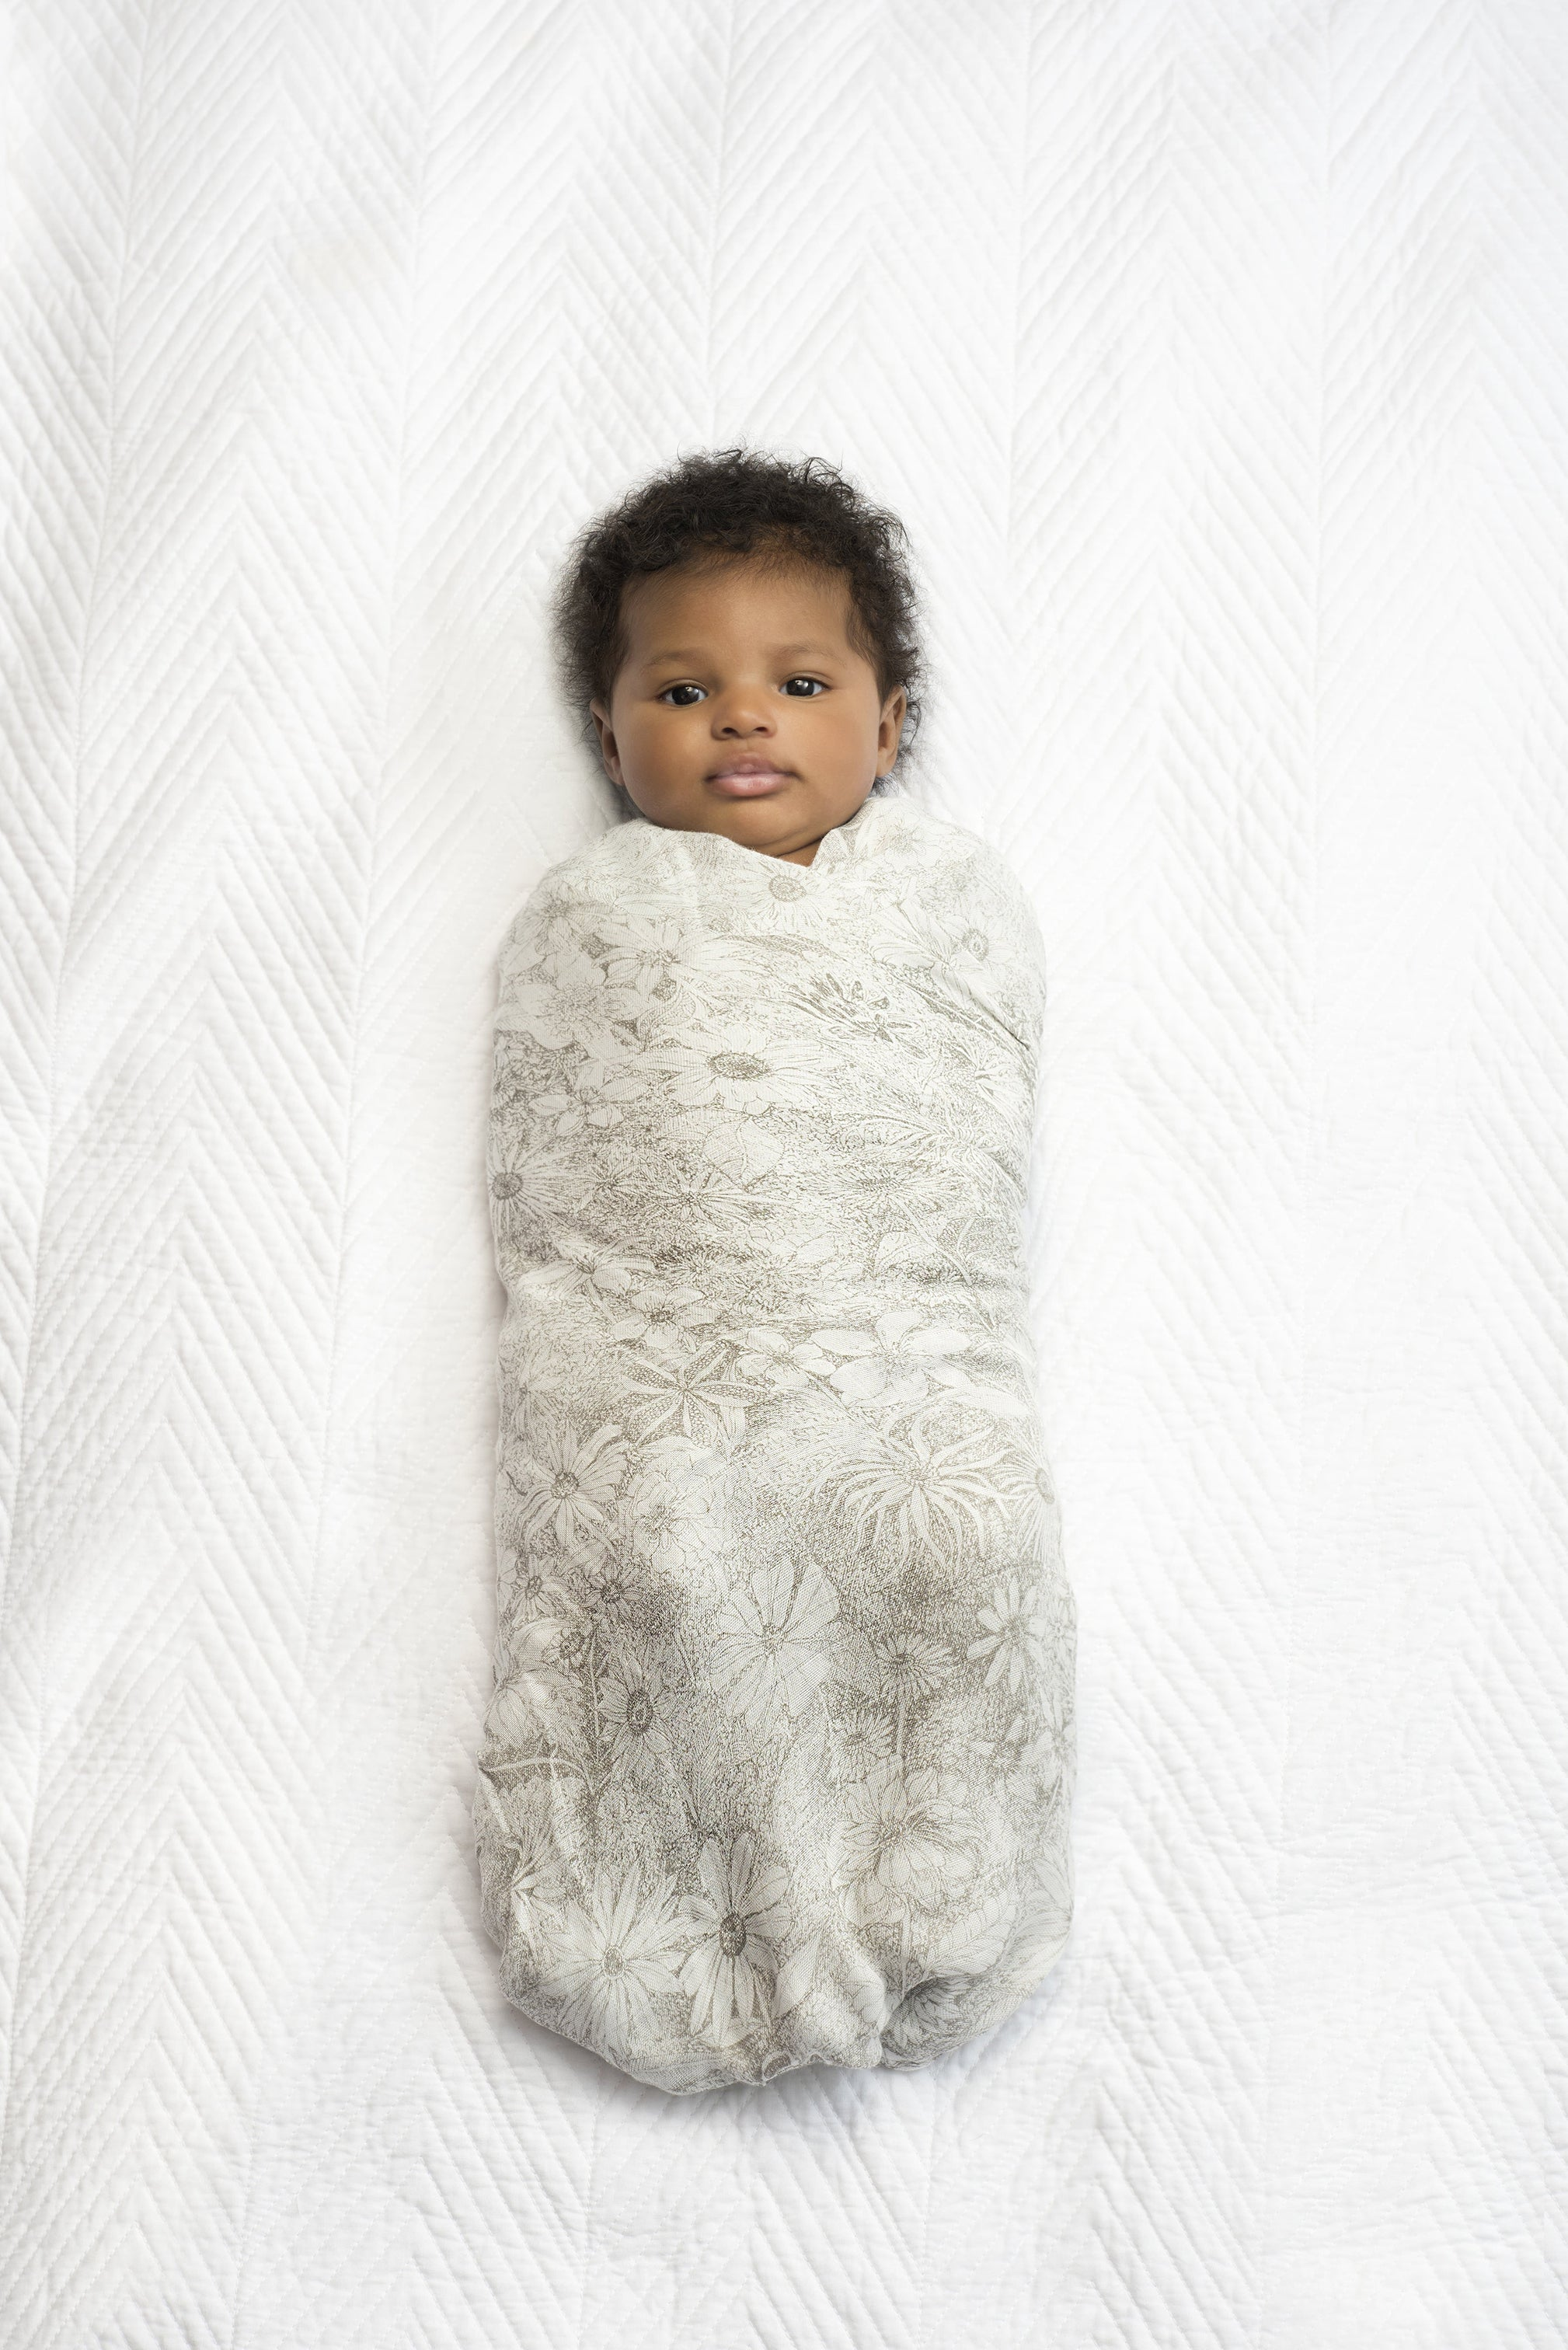 Baby wrapped in a featherlight silky soft swaddle.